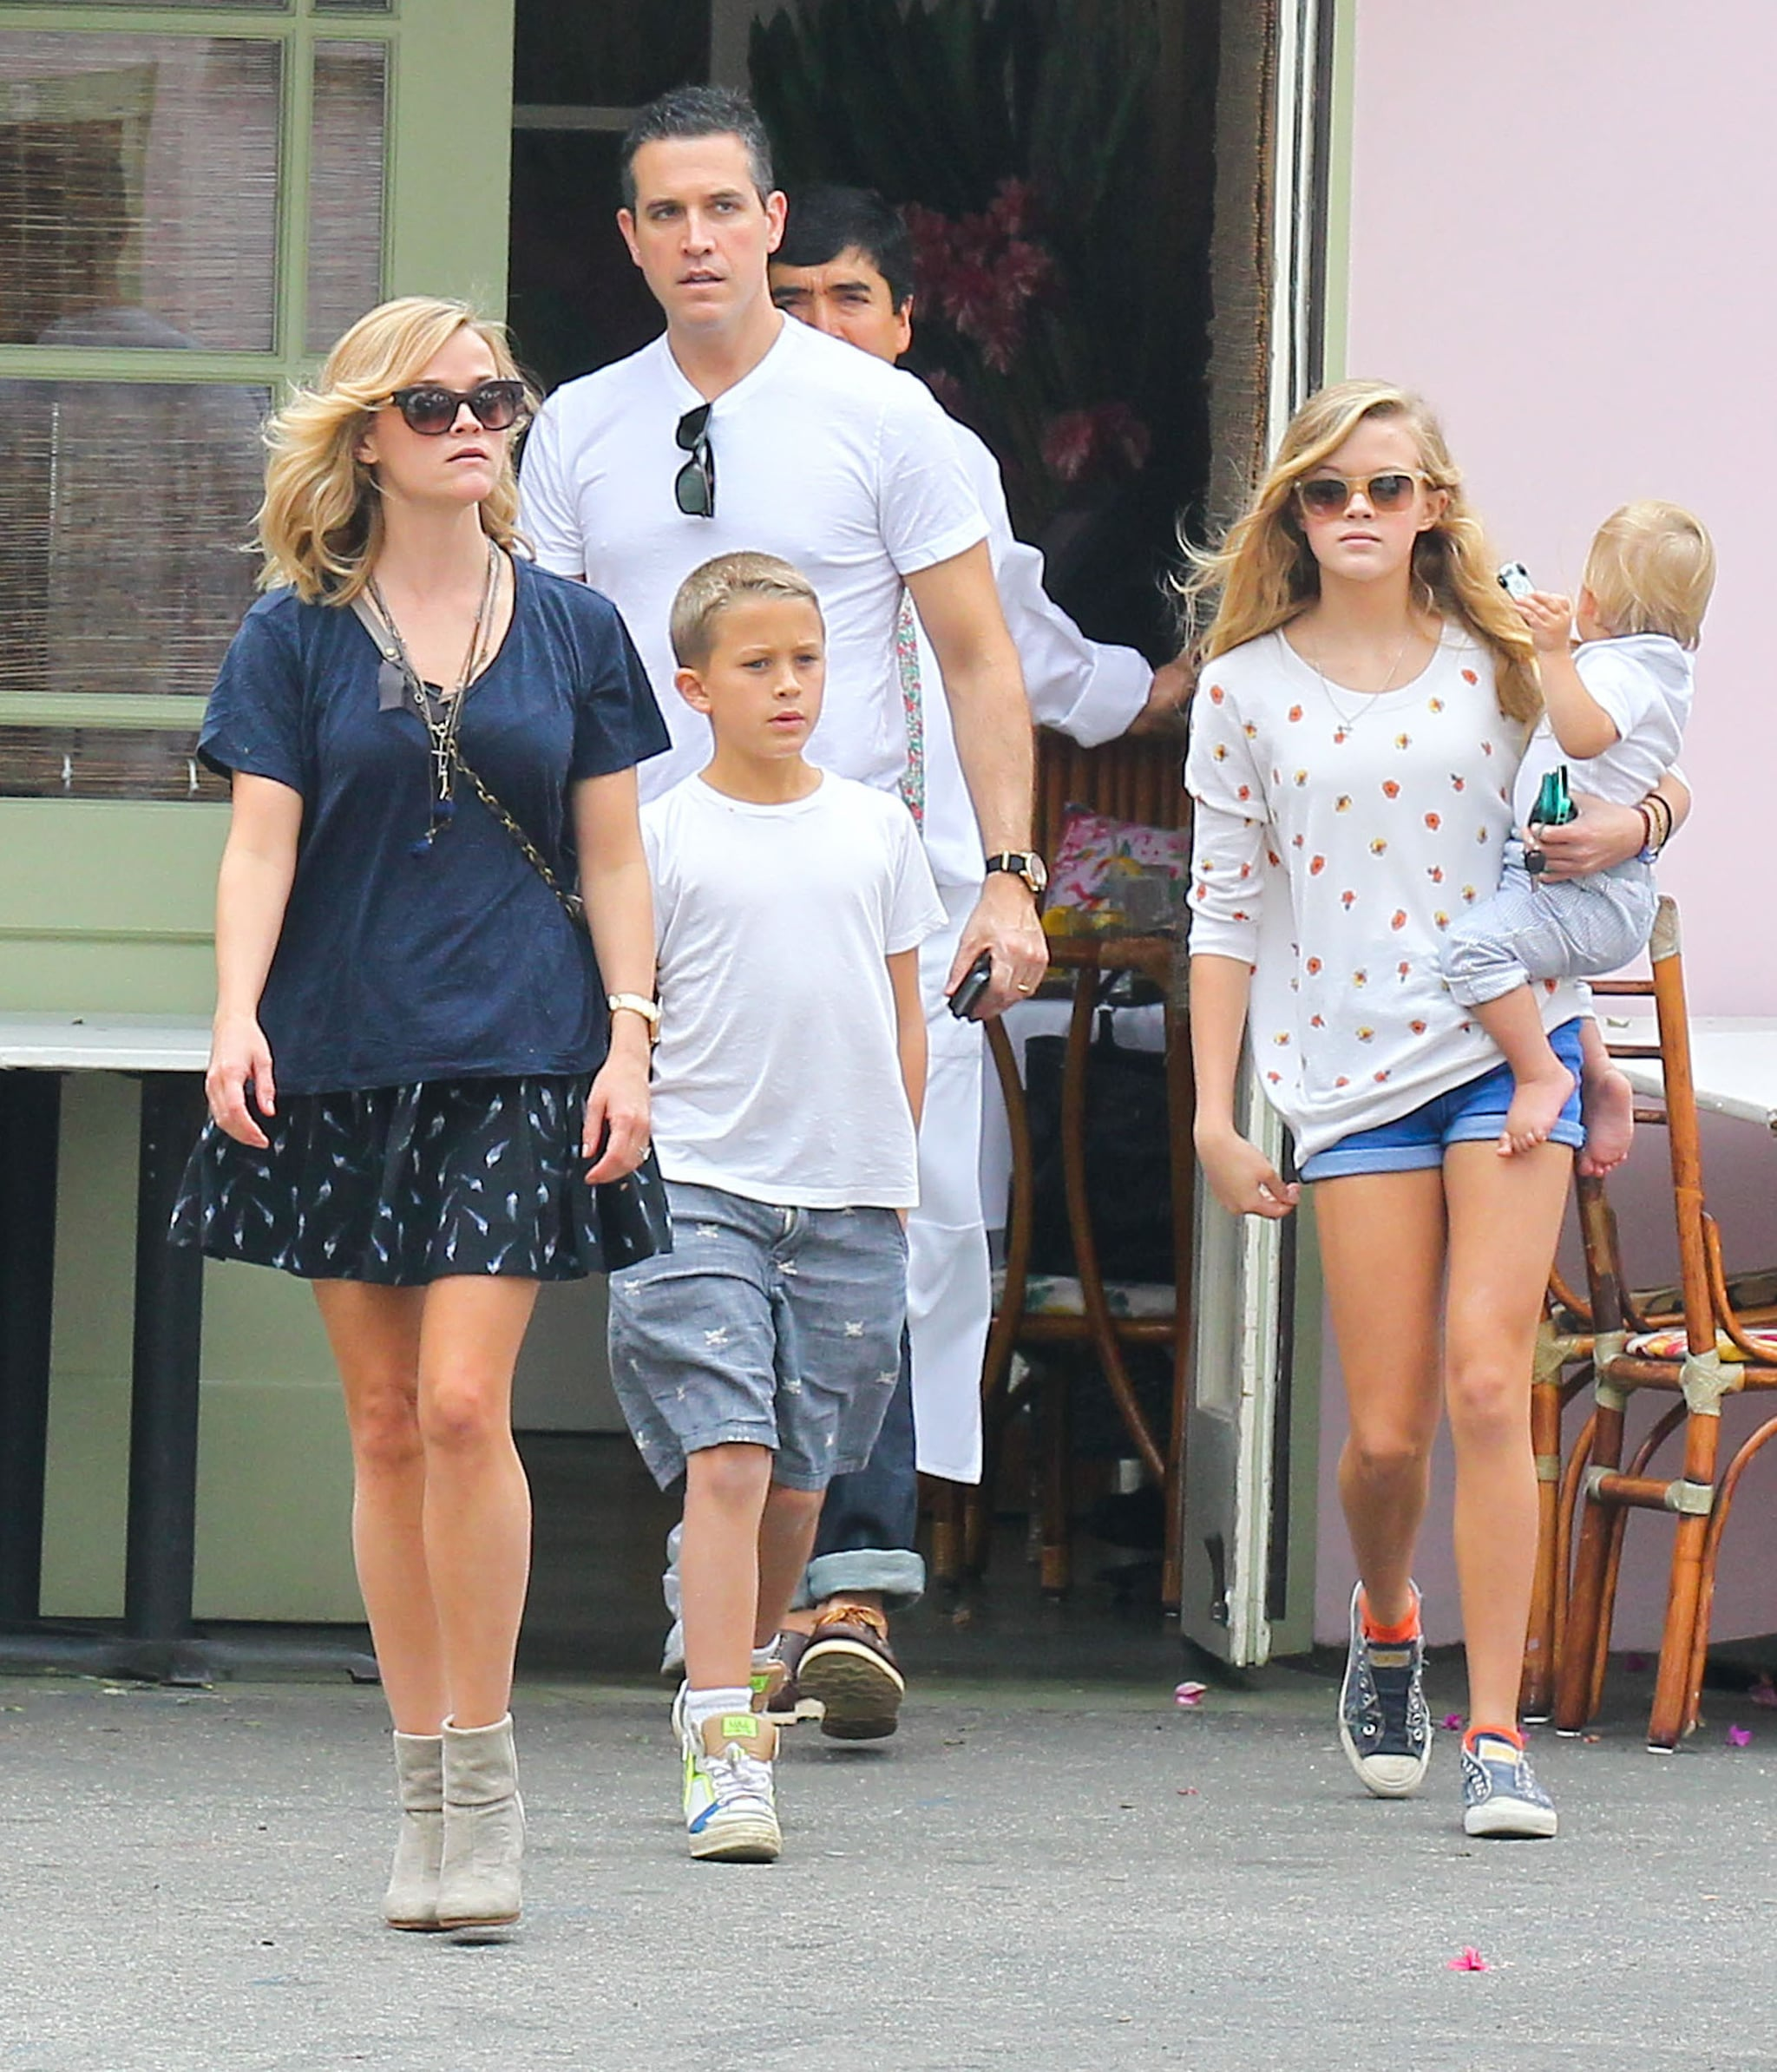 Reese witherspoon walked with her husband jim toth and kids deacon